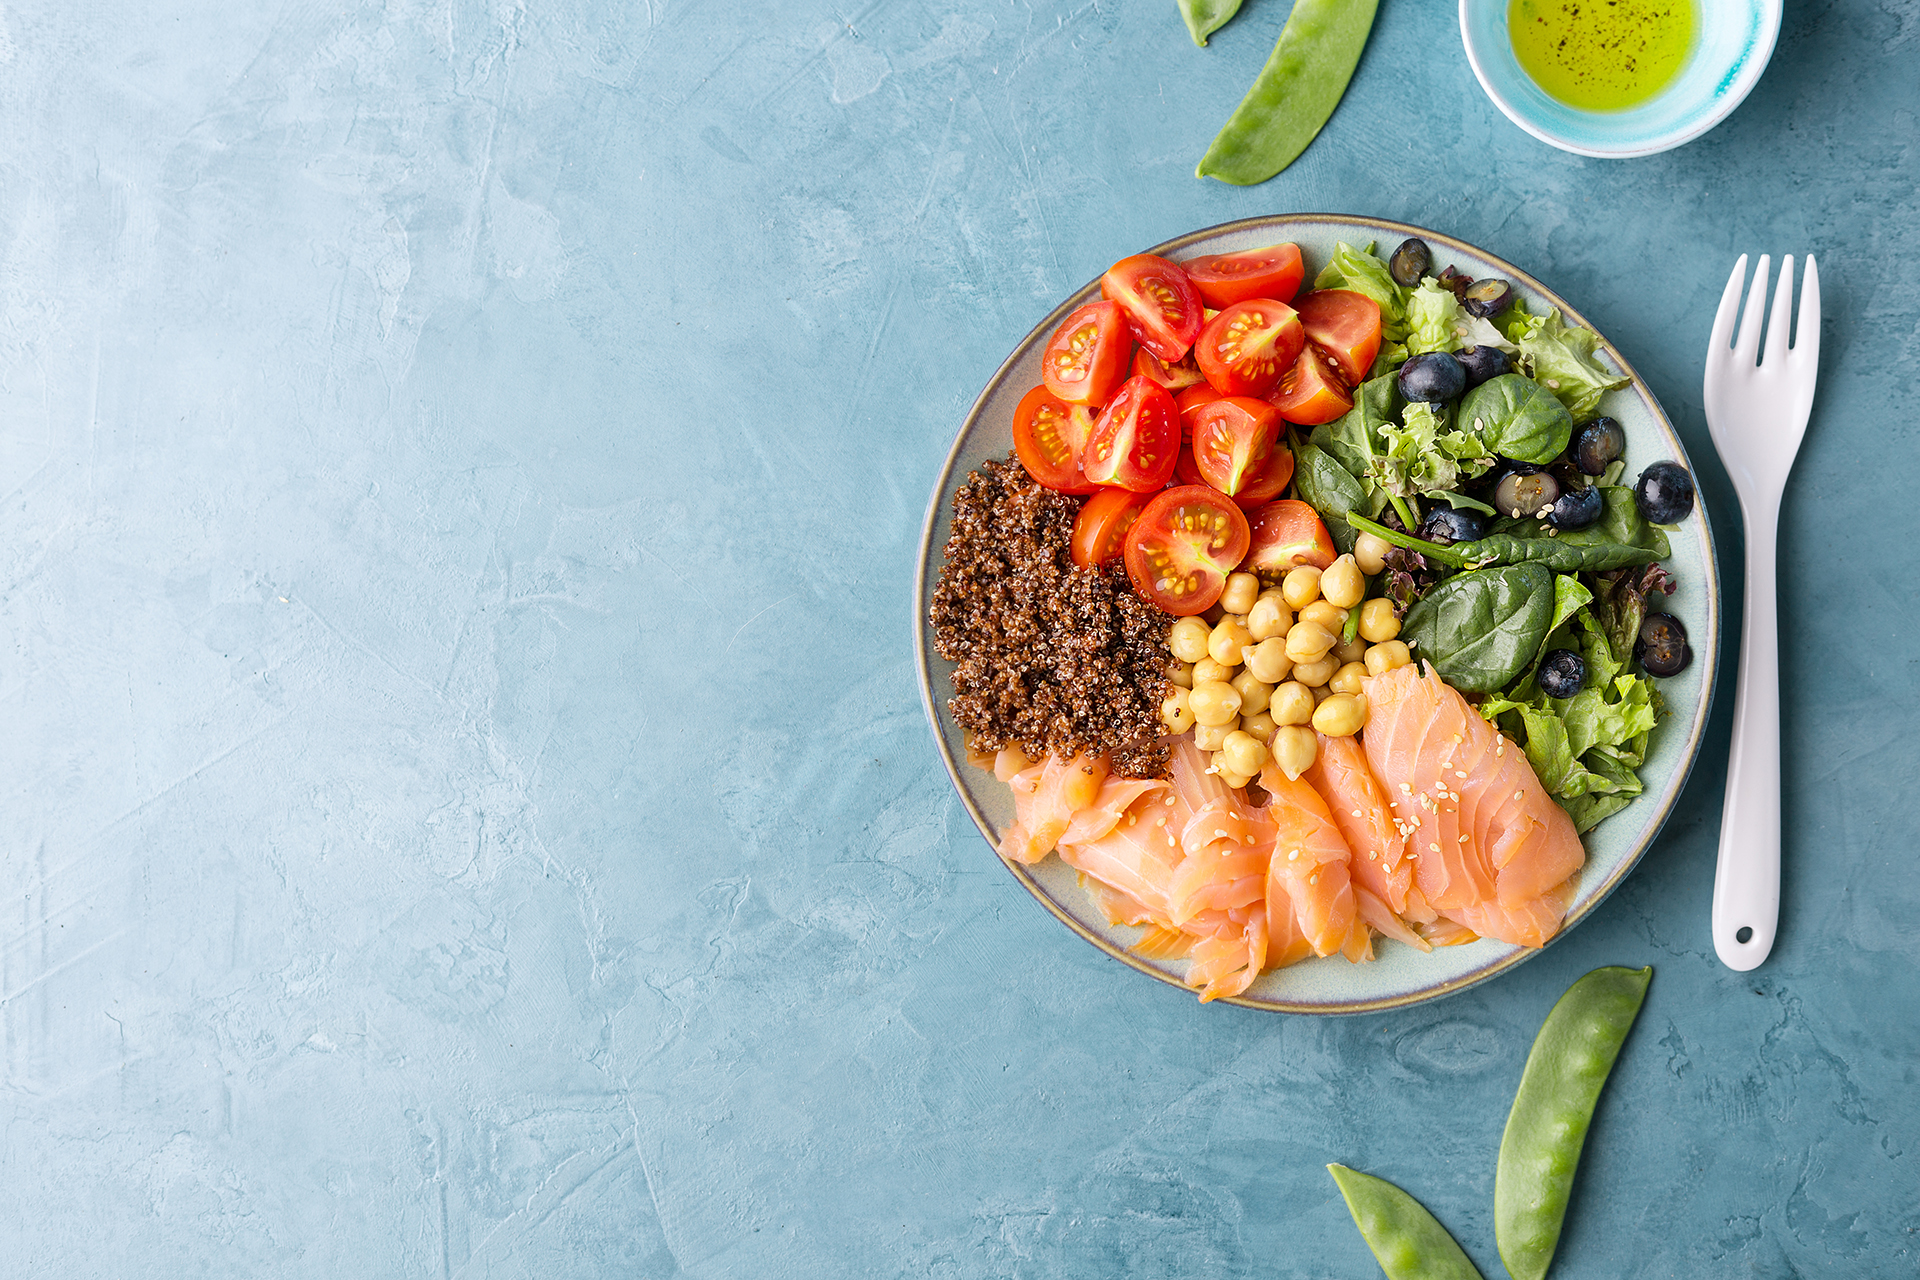 Buddha bowl salad with fish, salad leaves, quinoa, chickpea and spinach on blue table. Healthy Clean eating Detox Concept. Top View